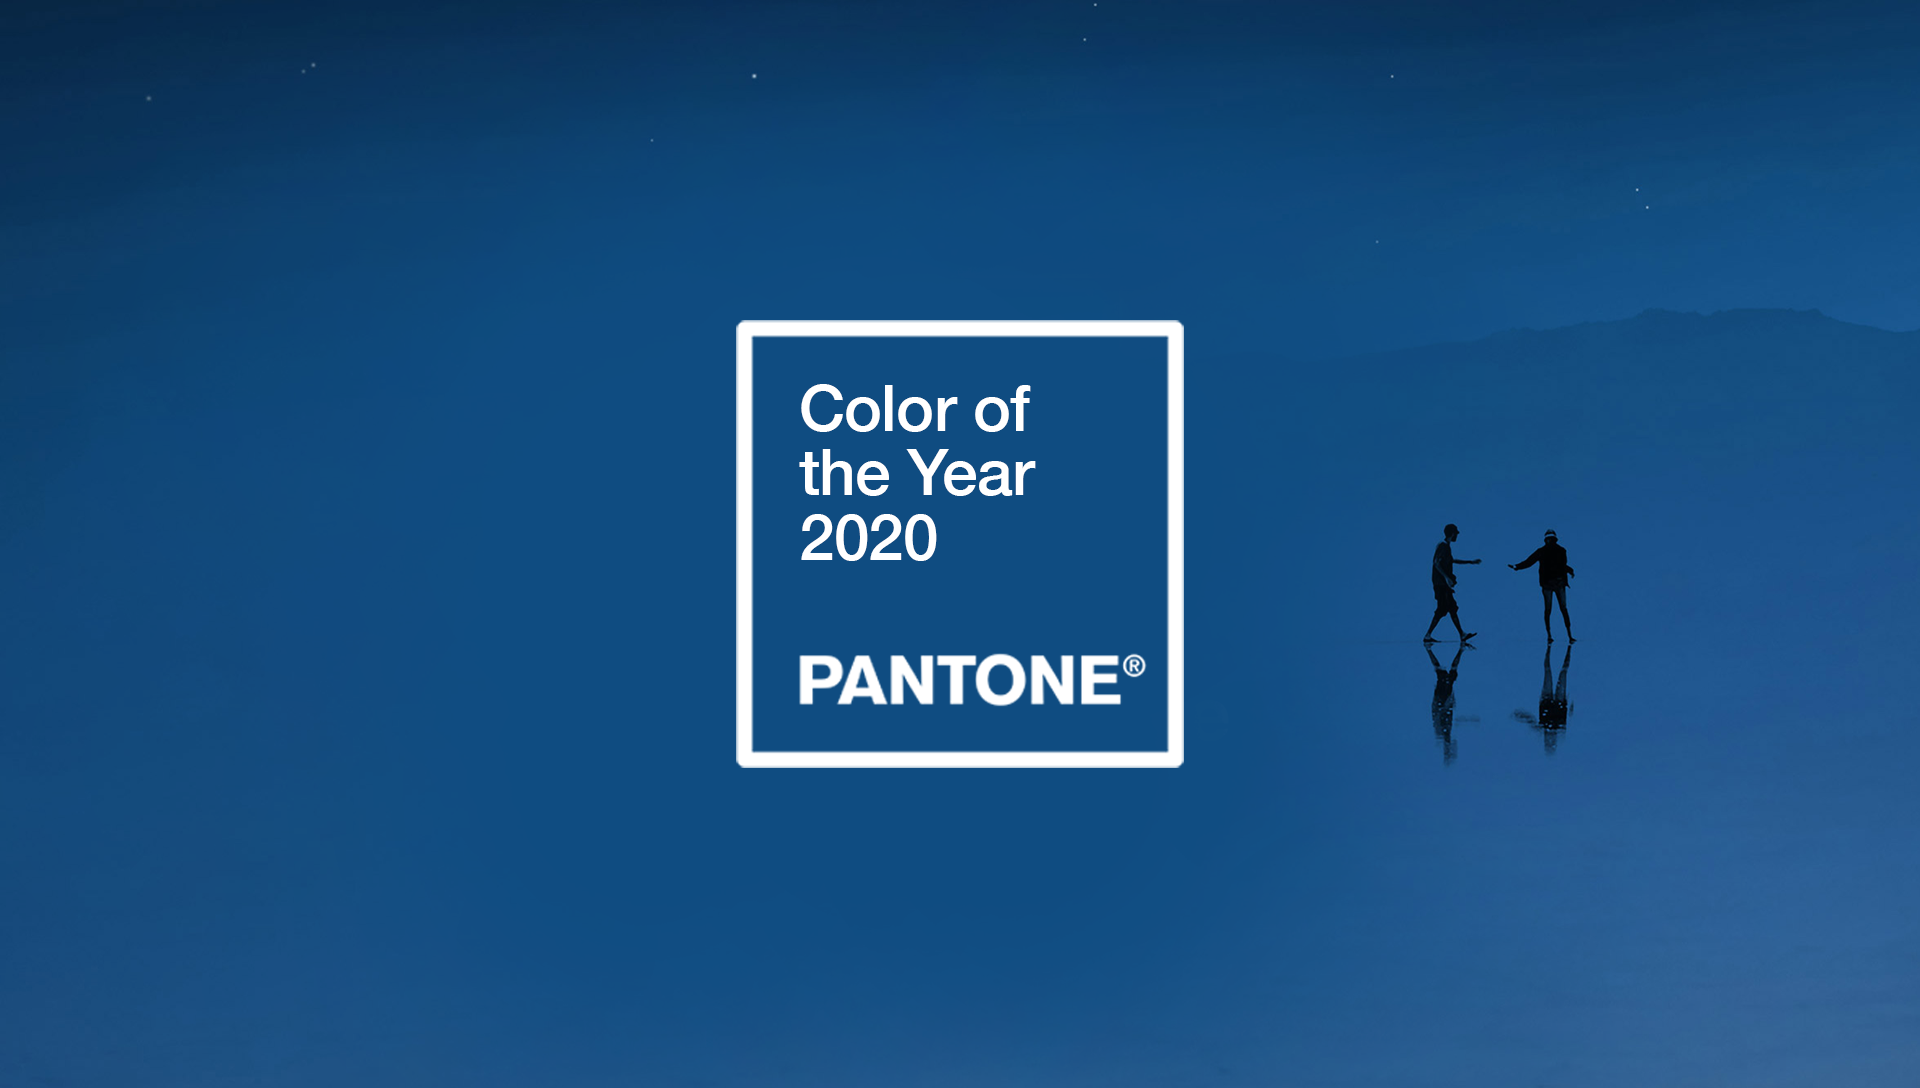 The official Pantone Classic Blue image.